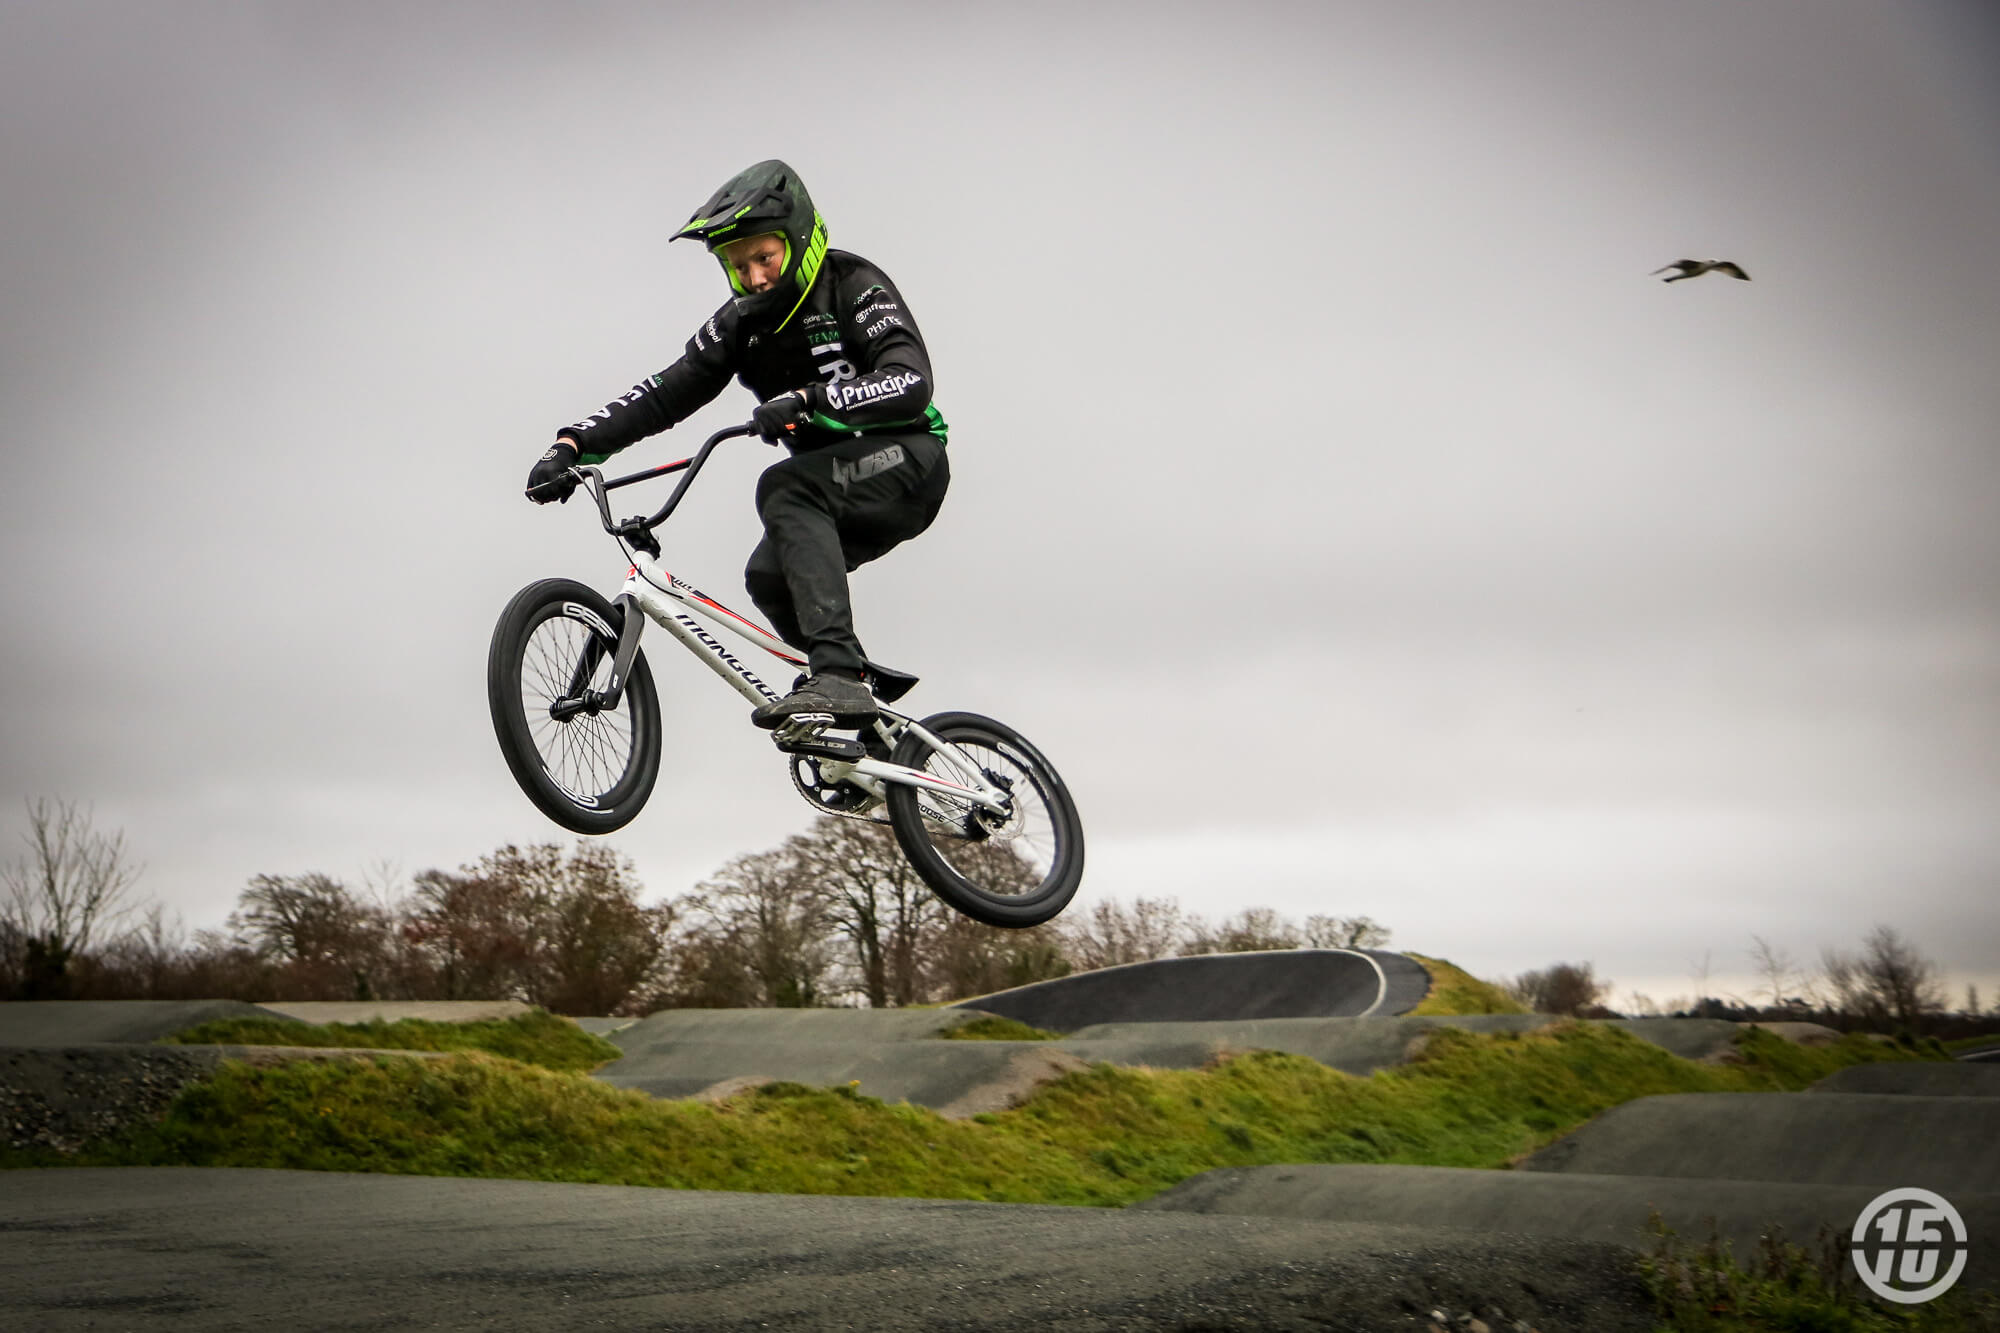 Gate8 BMX 2019 Mongoose Team Bike - Fifteen BMX